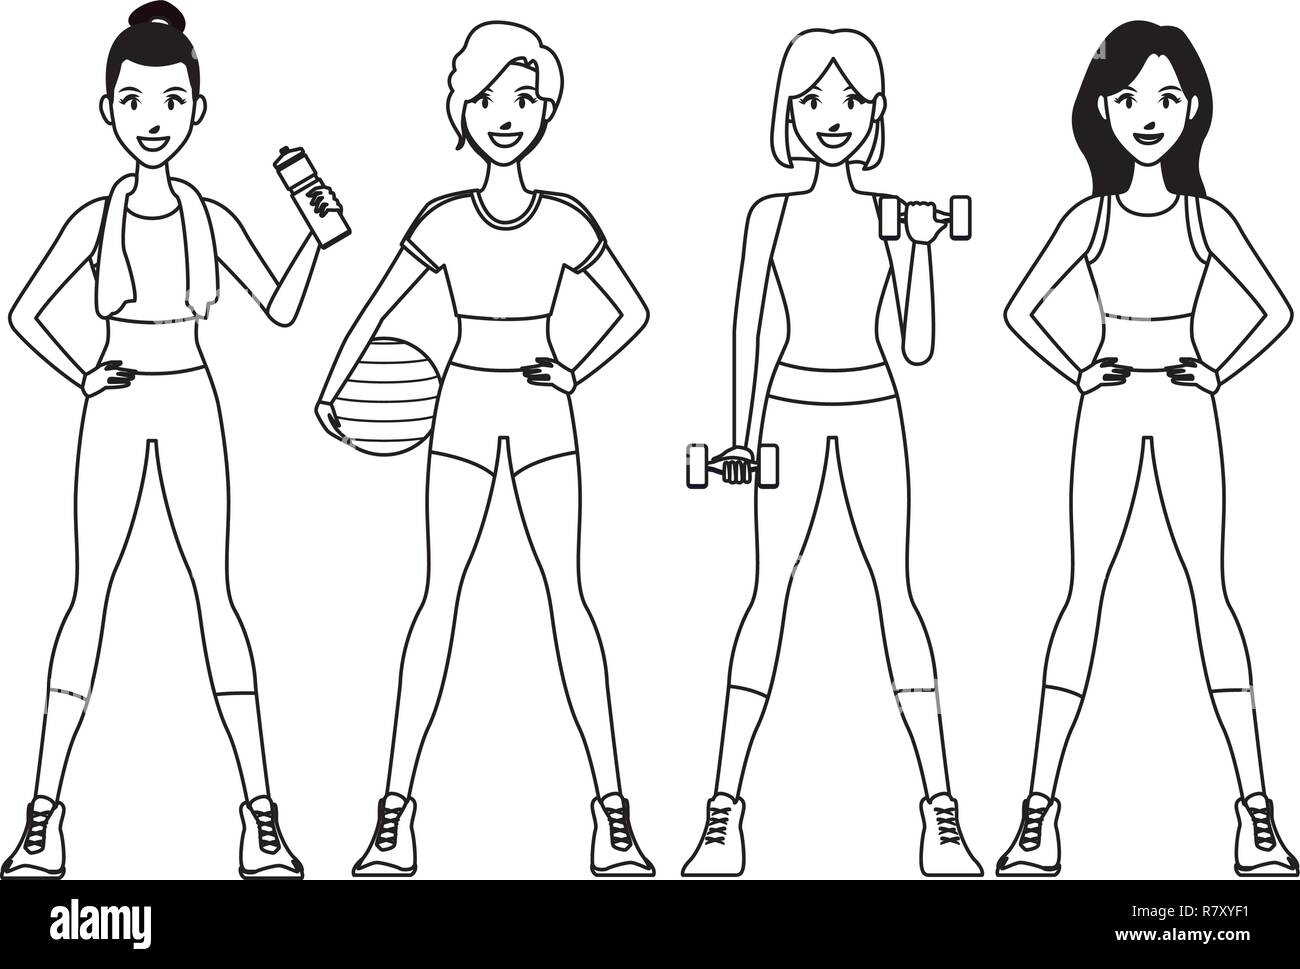 Fit Women Doing Exercise Stock Vector Image Art Alamy If you want to take your drawing to the next level, make the body outlines for your female figures proportionally correct. alamy